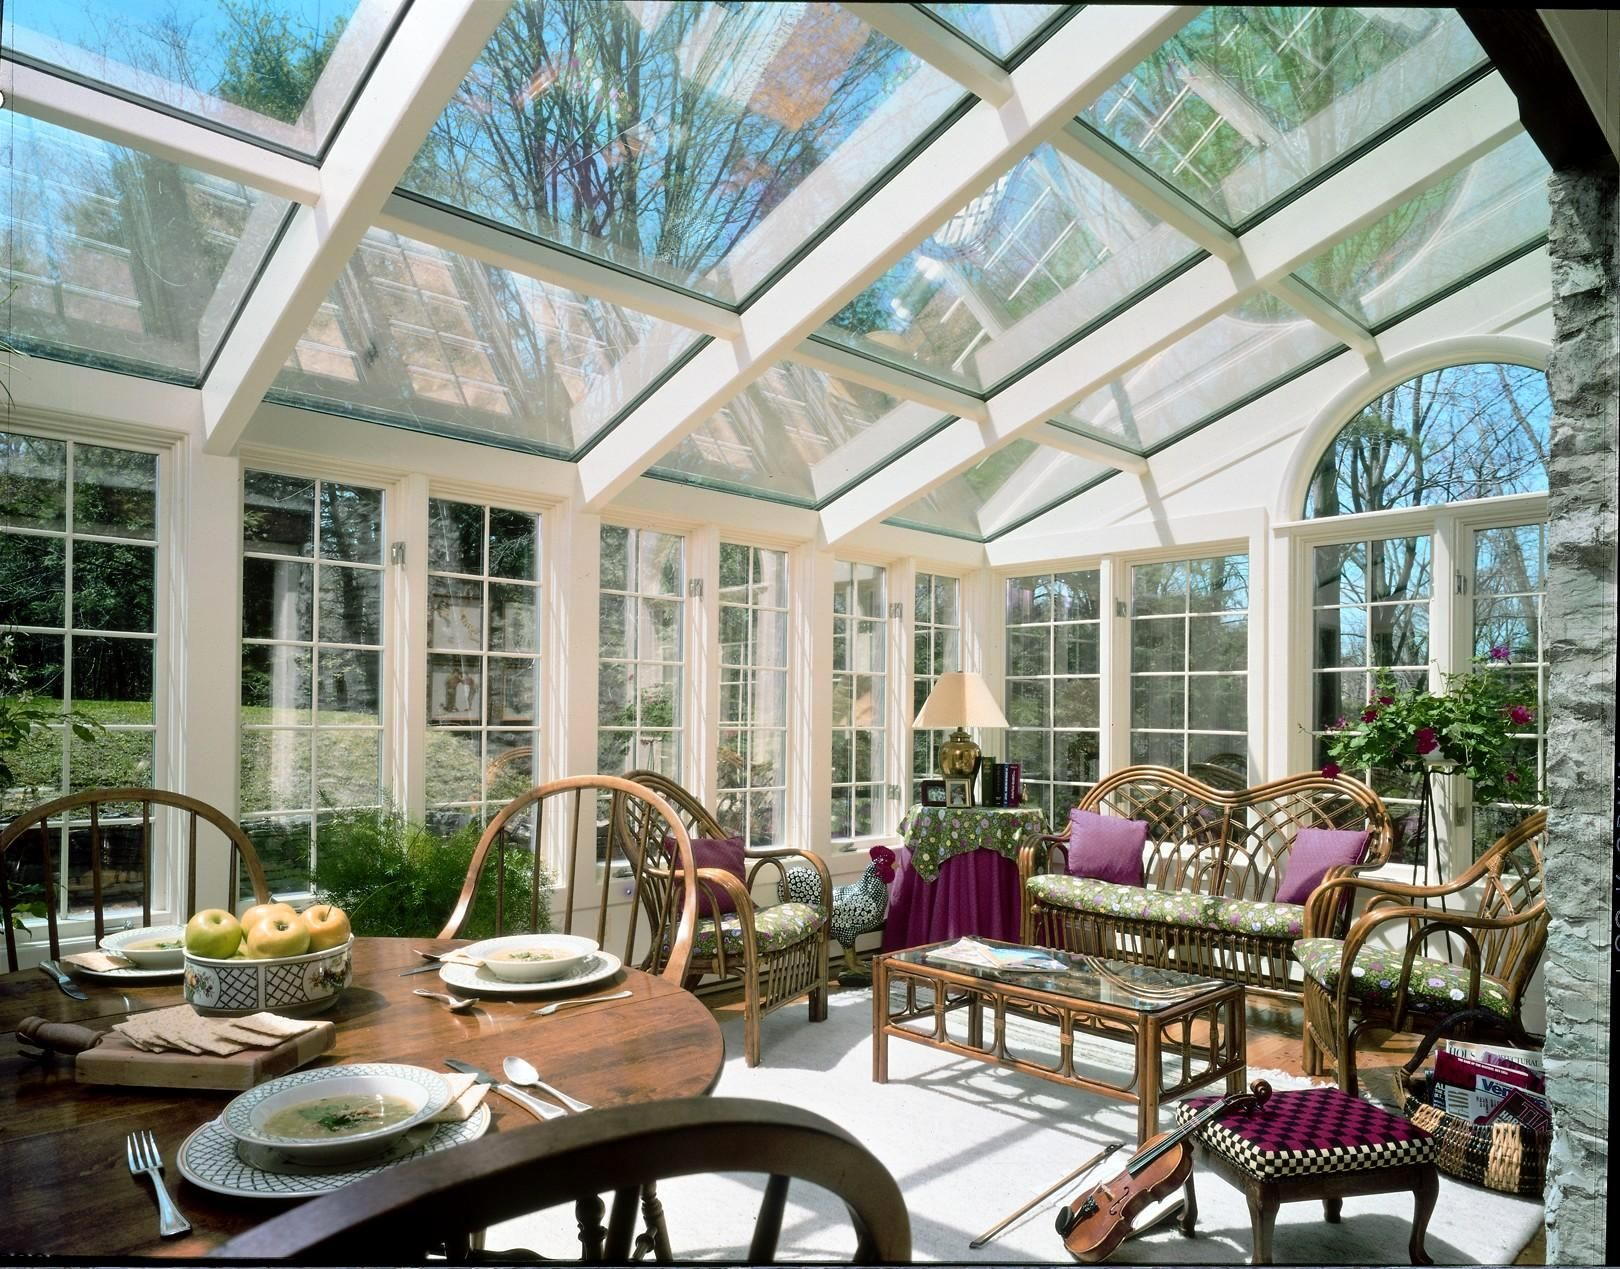 If You Live In A Climate That Has The Four Seasons  Think Sunrooms Or  SolariumThey Are A Great Way To Make Use Of The Natural Light, In This Post  We Have ...